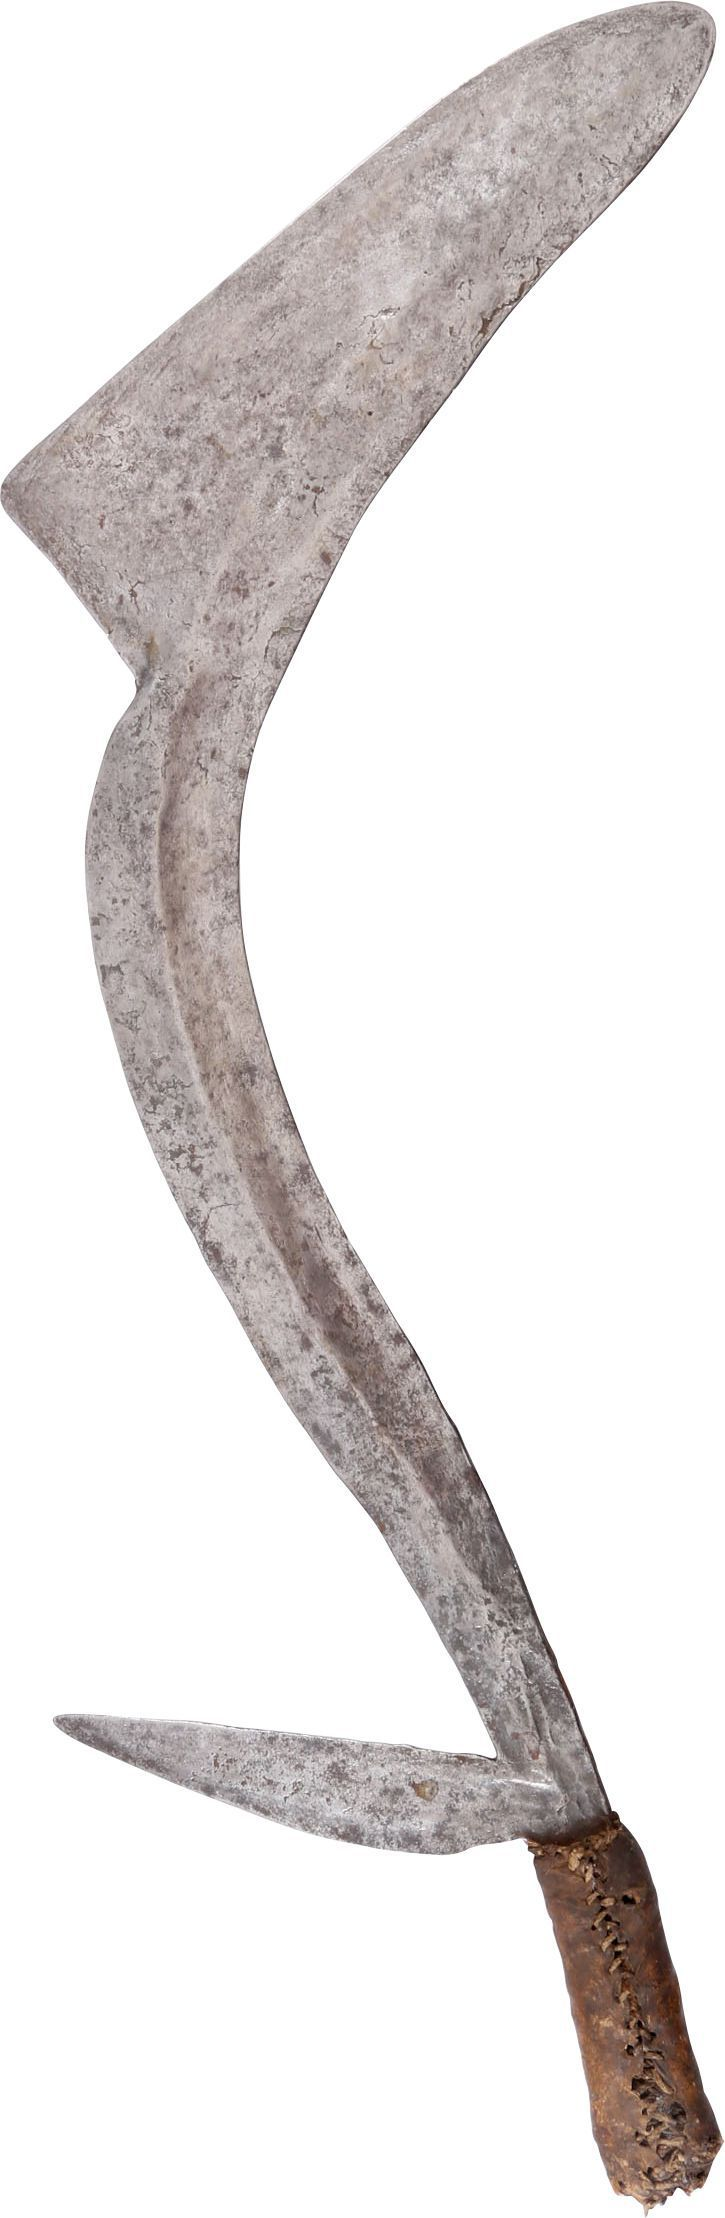 Banda Throwing Knife 19Th Century - Product